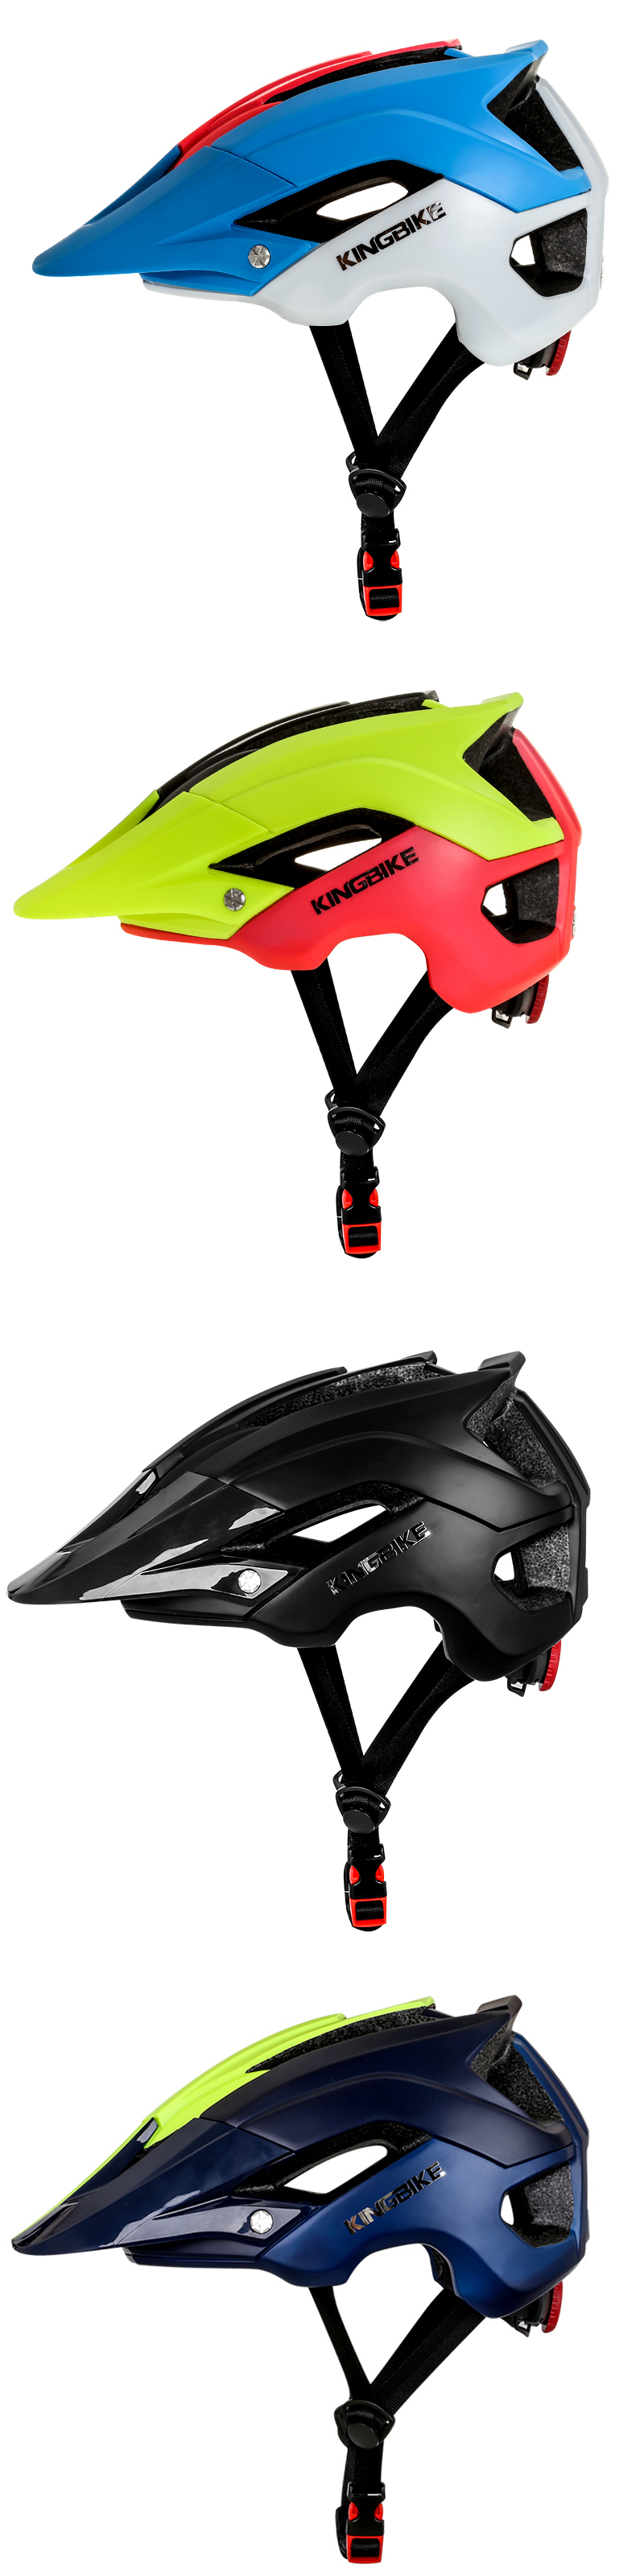 2018 cycling helmet